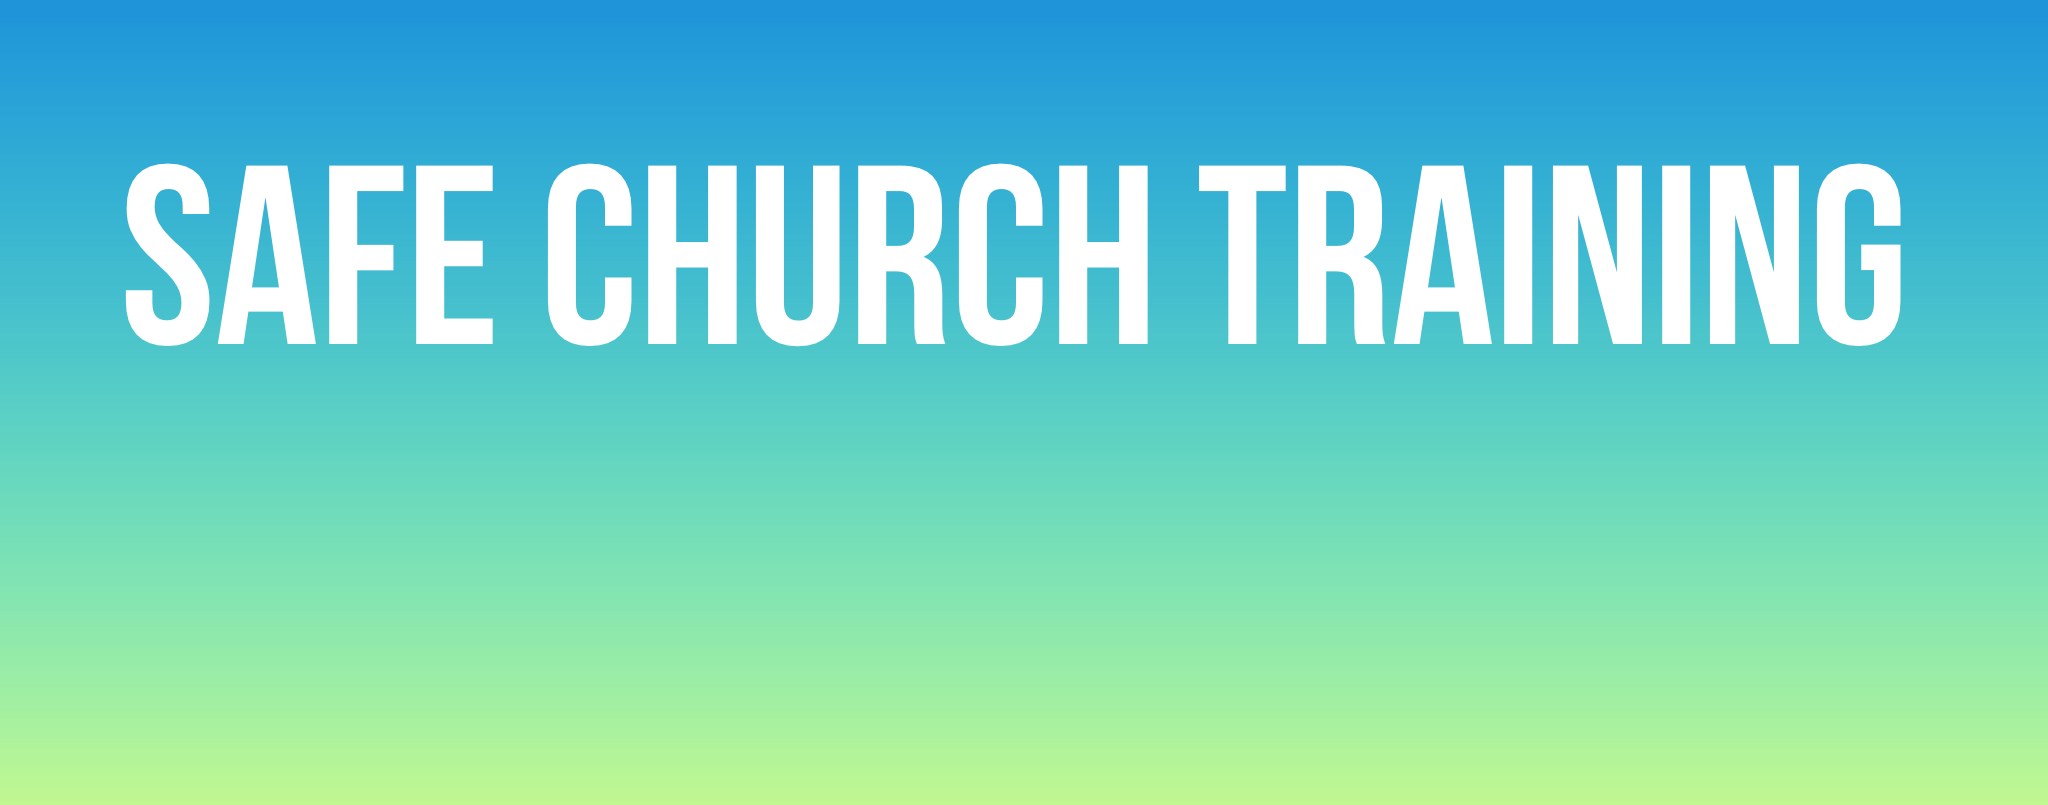 Safe Church Training.PNG